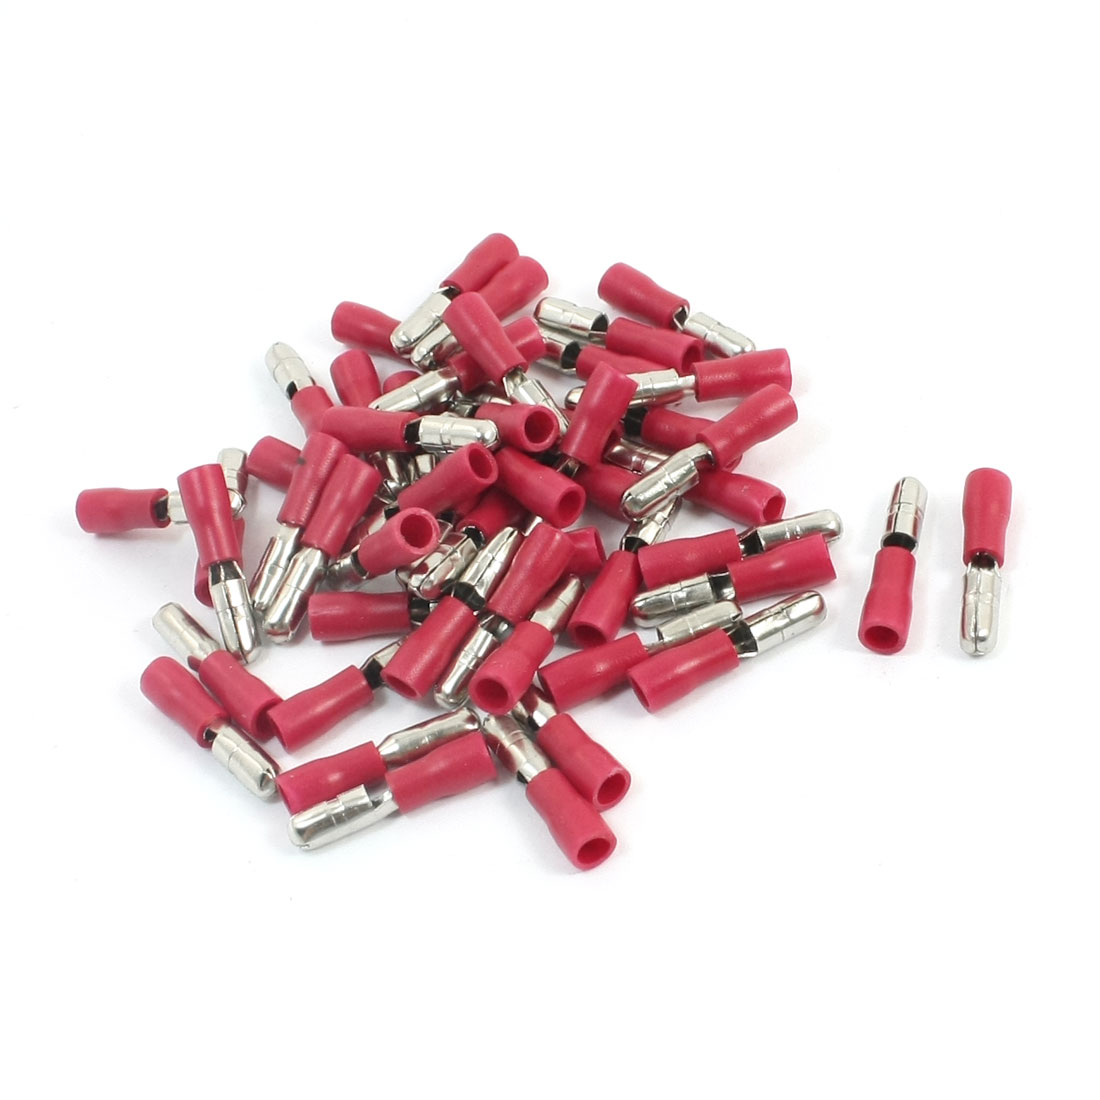 50Pcs 22-16 AWG MPD1-156 Red PVC Sleeve Insulated 4mm Cable Terminals Crimp